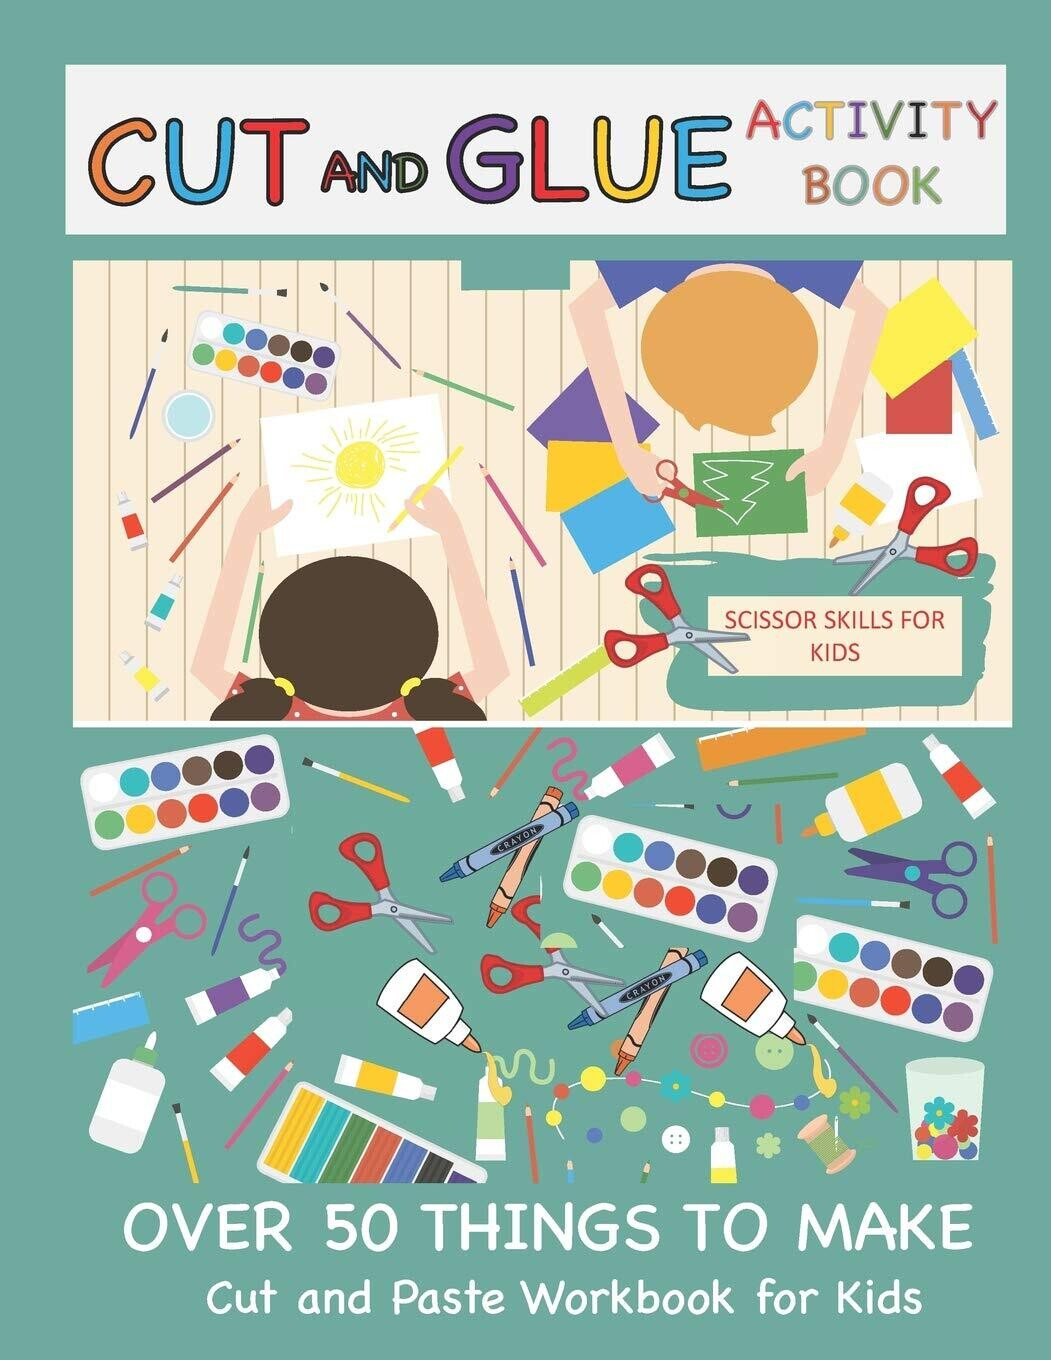 Cut and Glue Activity Book: Cut and Paste Workbook for Kids